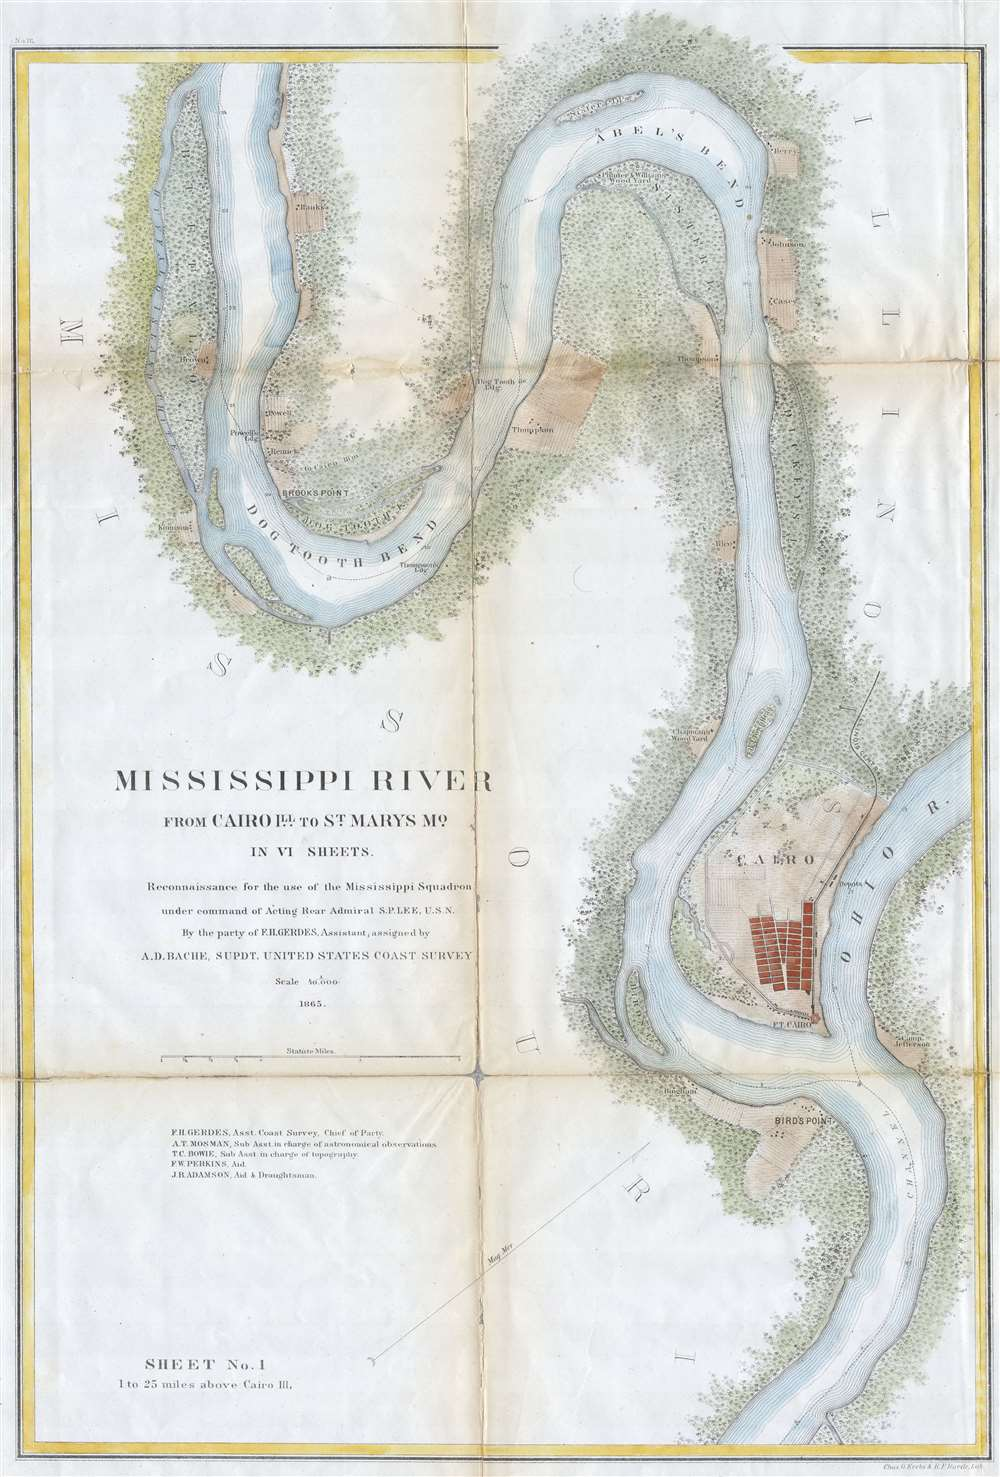 Mississippi River from Cairo Illinois to St. Mary's Missouri in VI Sheets.  Reconnaissance for the use of the Mississippi Squadron under the command of Acting Rear Admiral S.P.L.E.E,  U.S.N. By the part of E. H. Gerdes, Assistant; assigned by A.D. Bache, Supdt. United States Coast Survey. - Main View